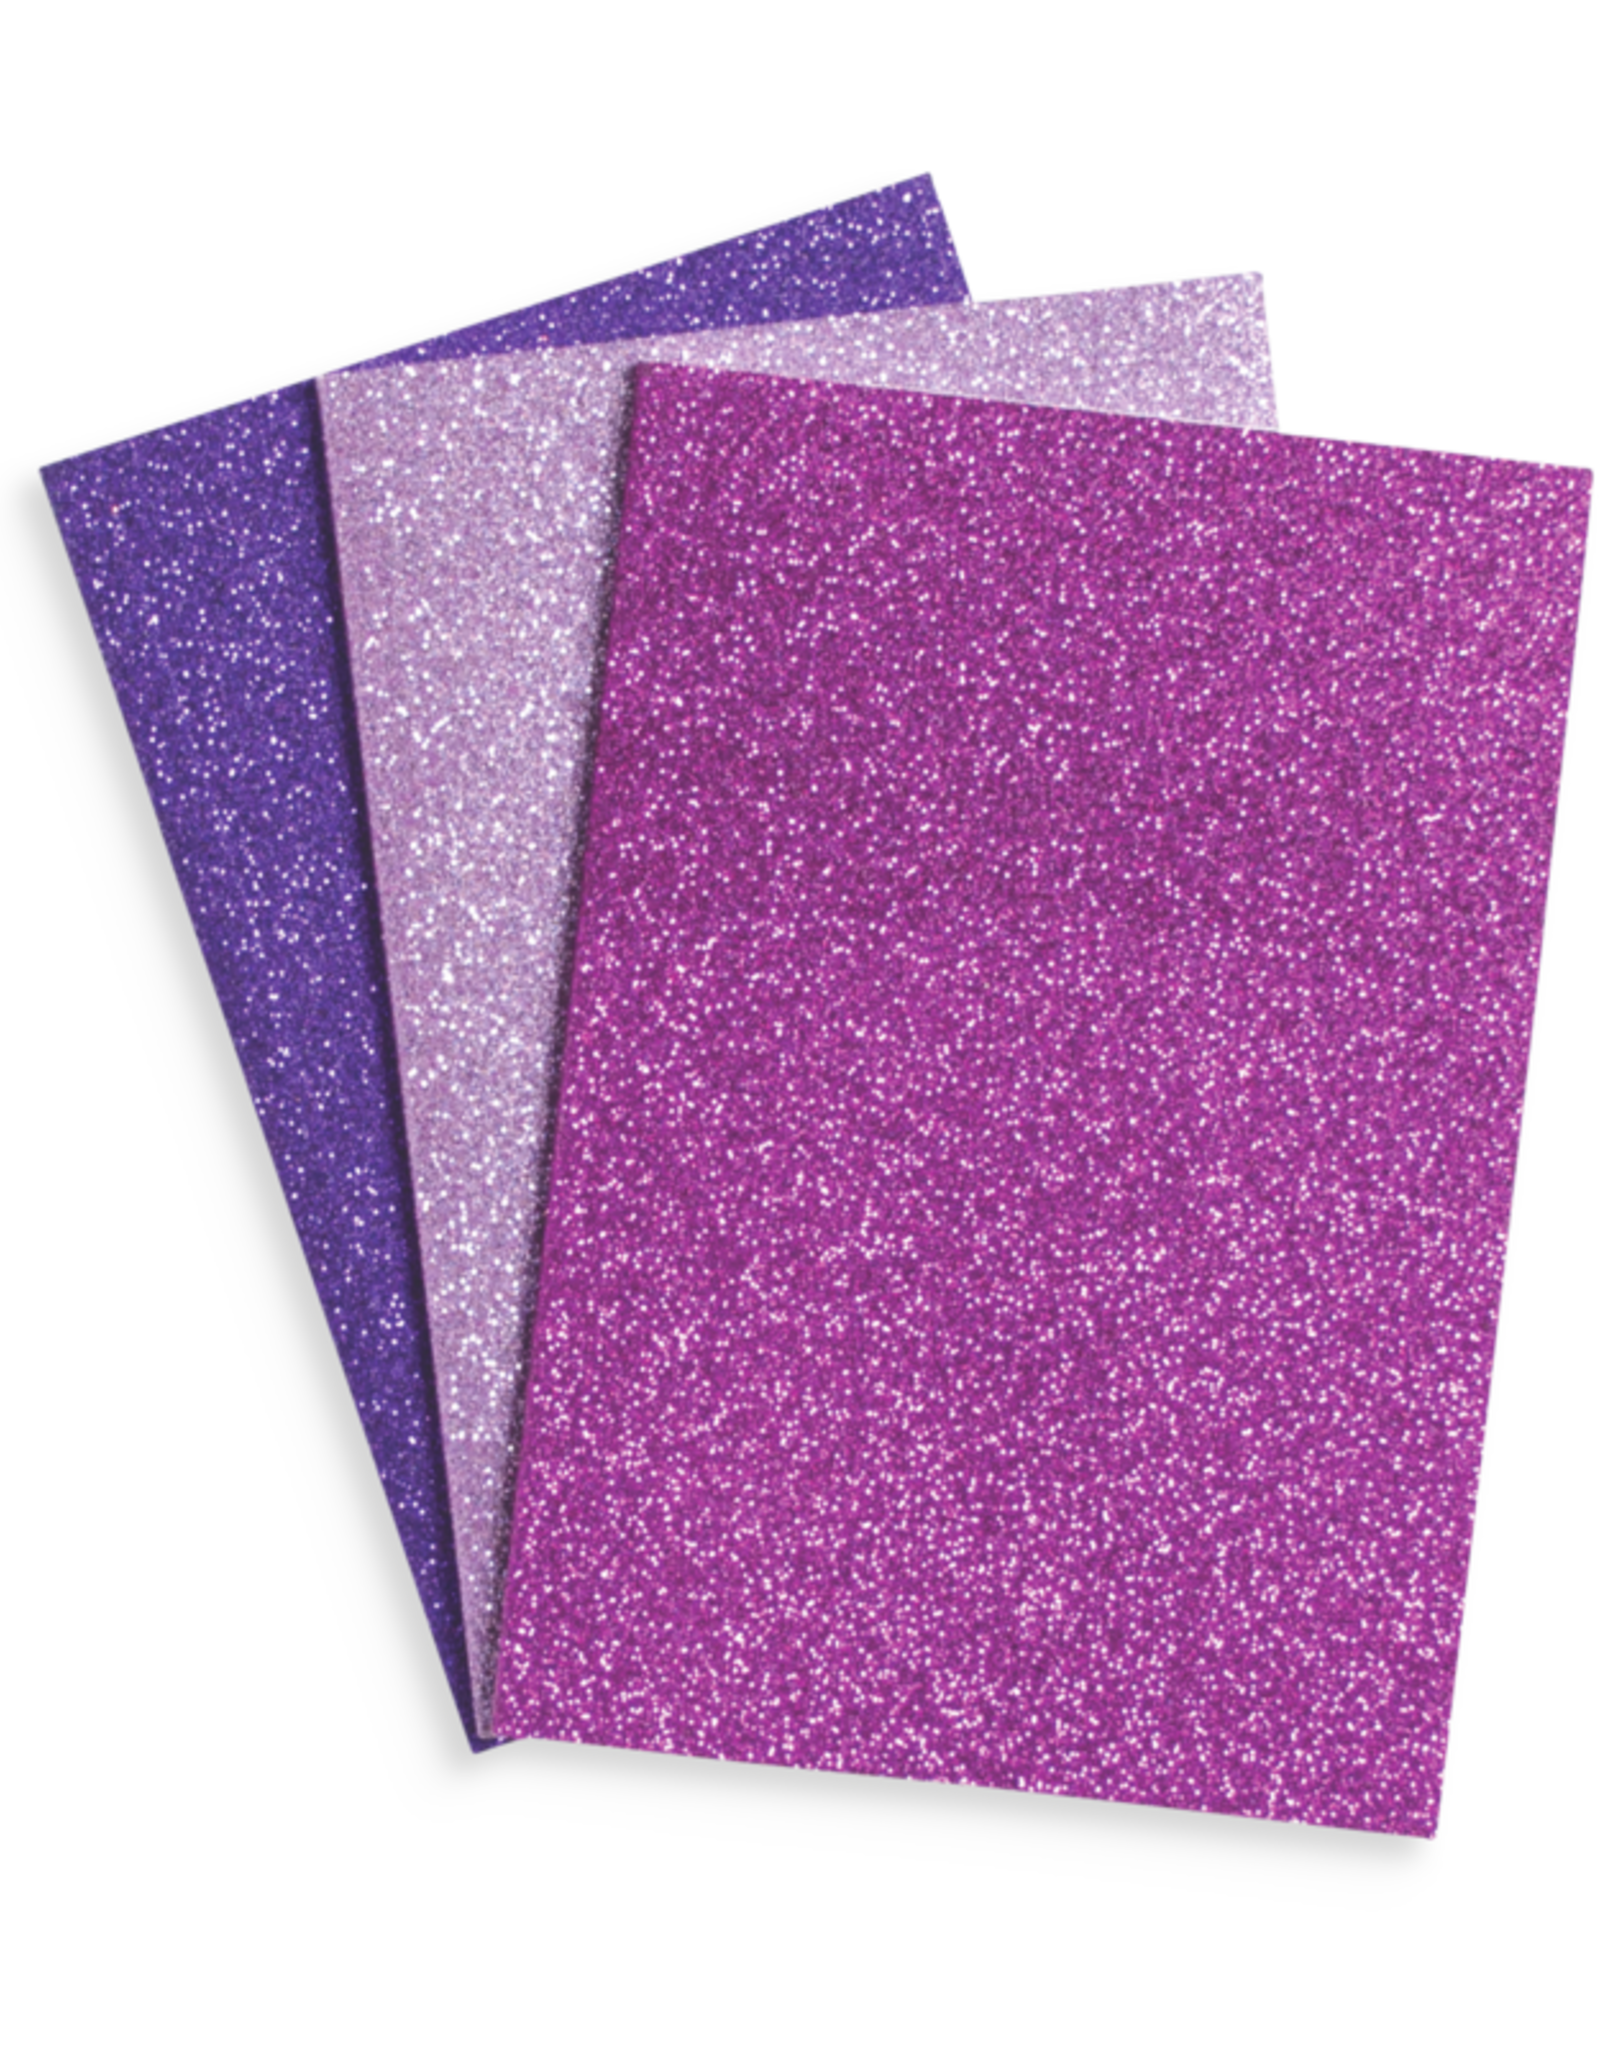 Ooly (Int Arrivals) Ooly Glamtastic Notebooks - Set of 3